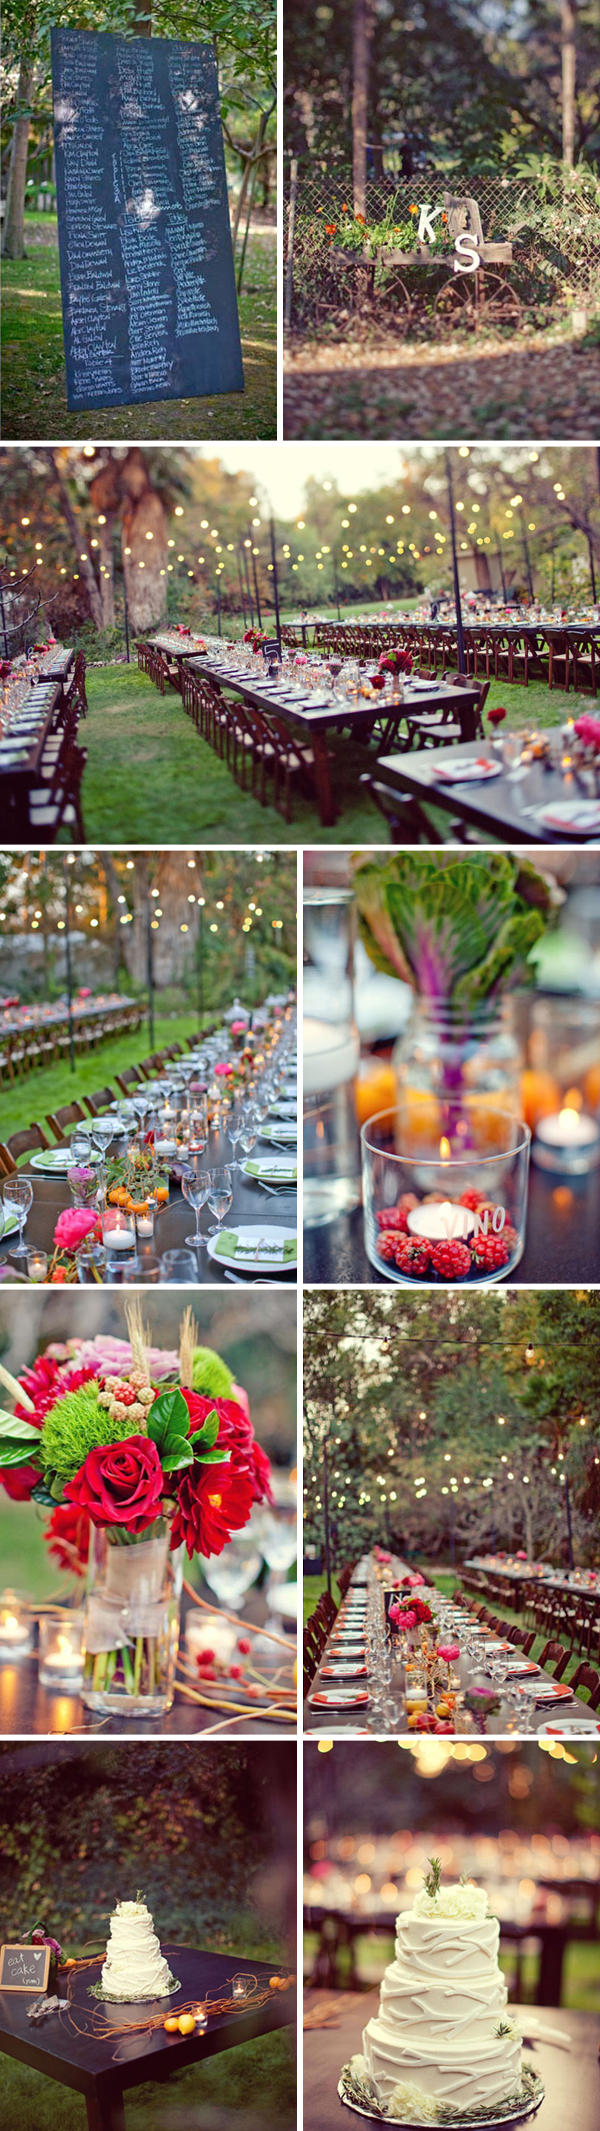 Summer Wedding Reception Ideas